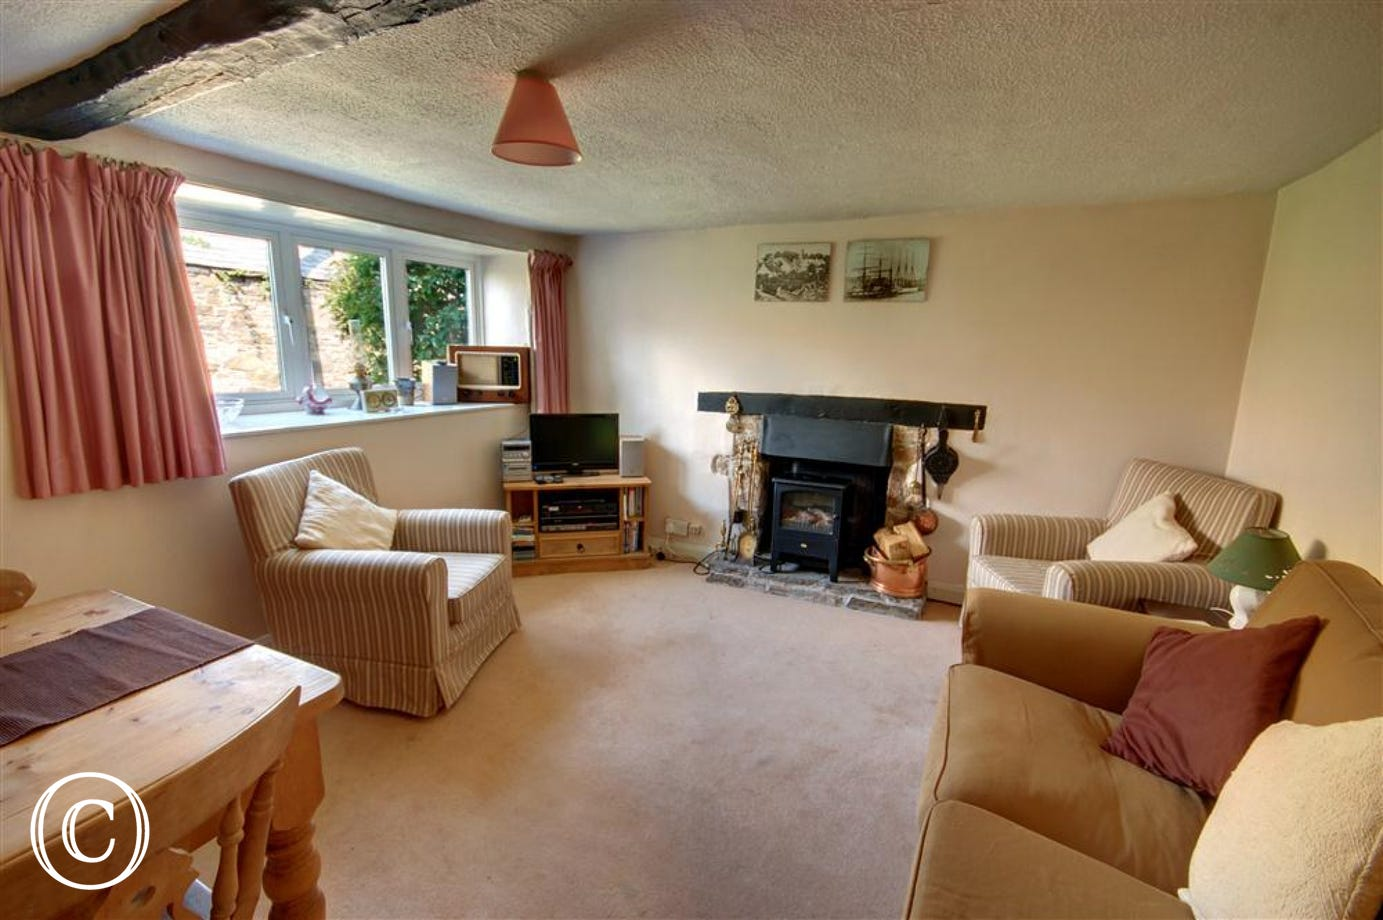 This cosy sitting room with open stone fireplace, its great for unwinding after a day exploring the nearby coastline.